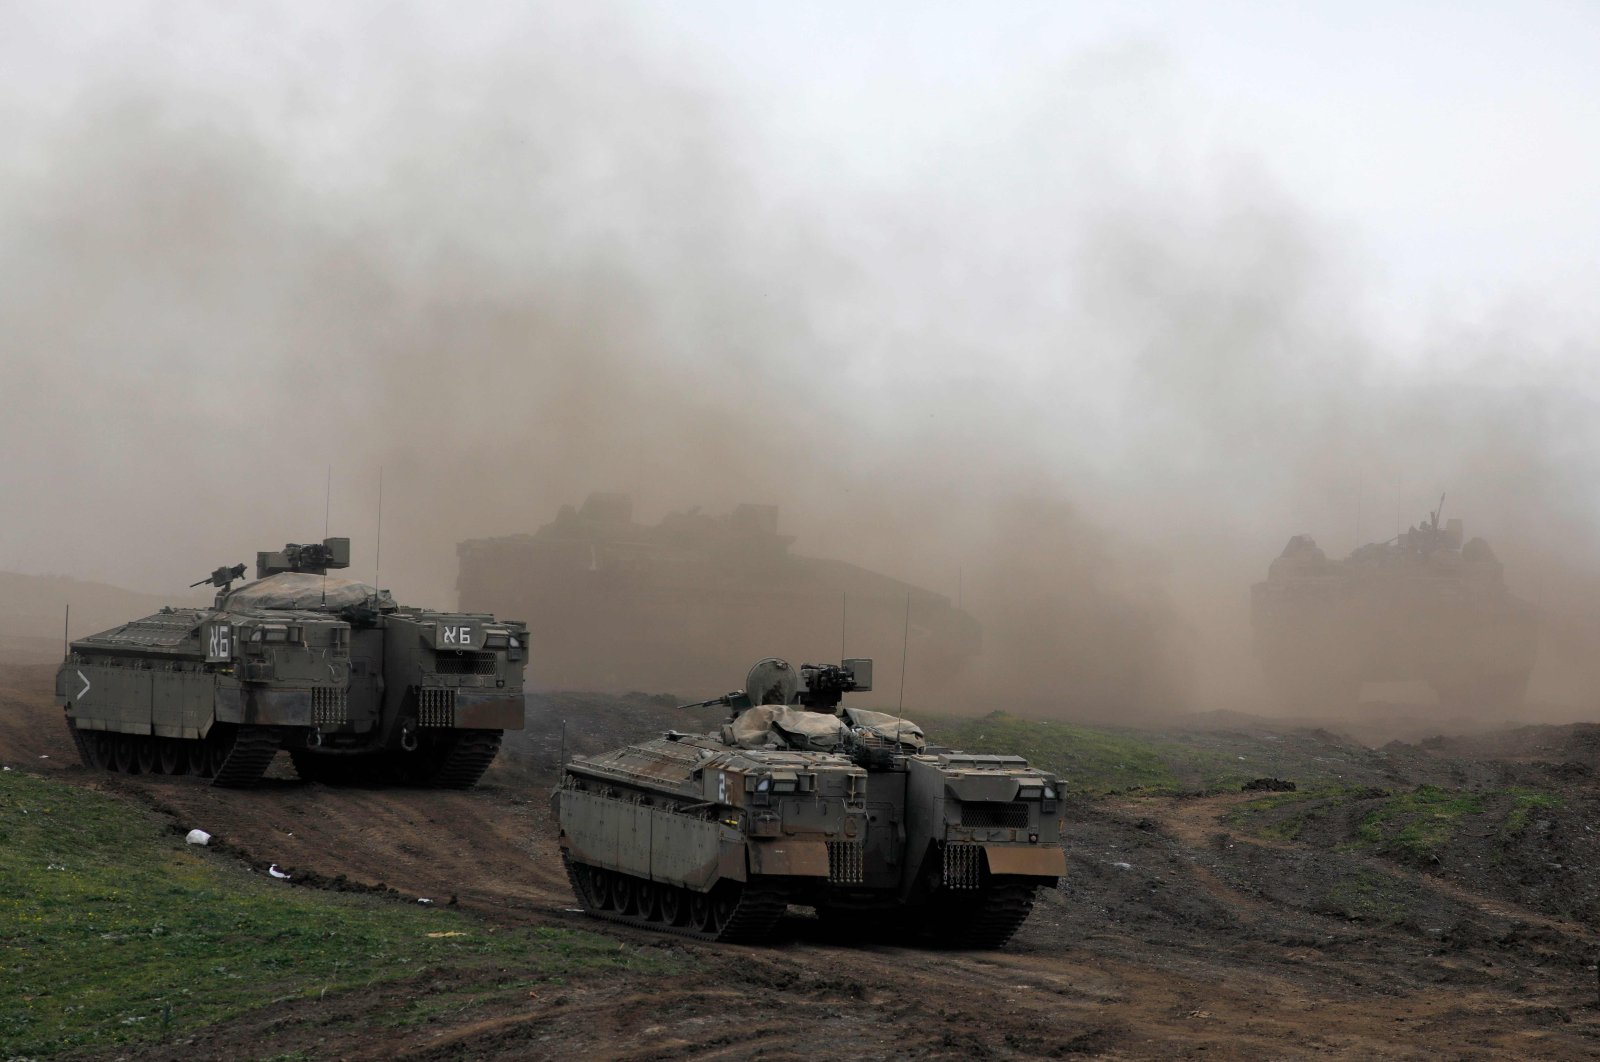 Israeli troops during a military drill in the Israeli-annexed Golan Heights, Syria, Jan. 13, 2021. (AFP Photo)